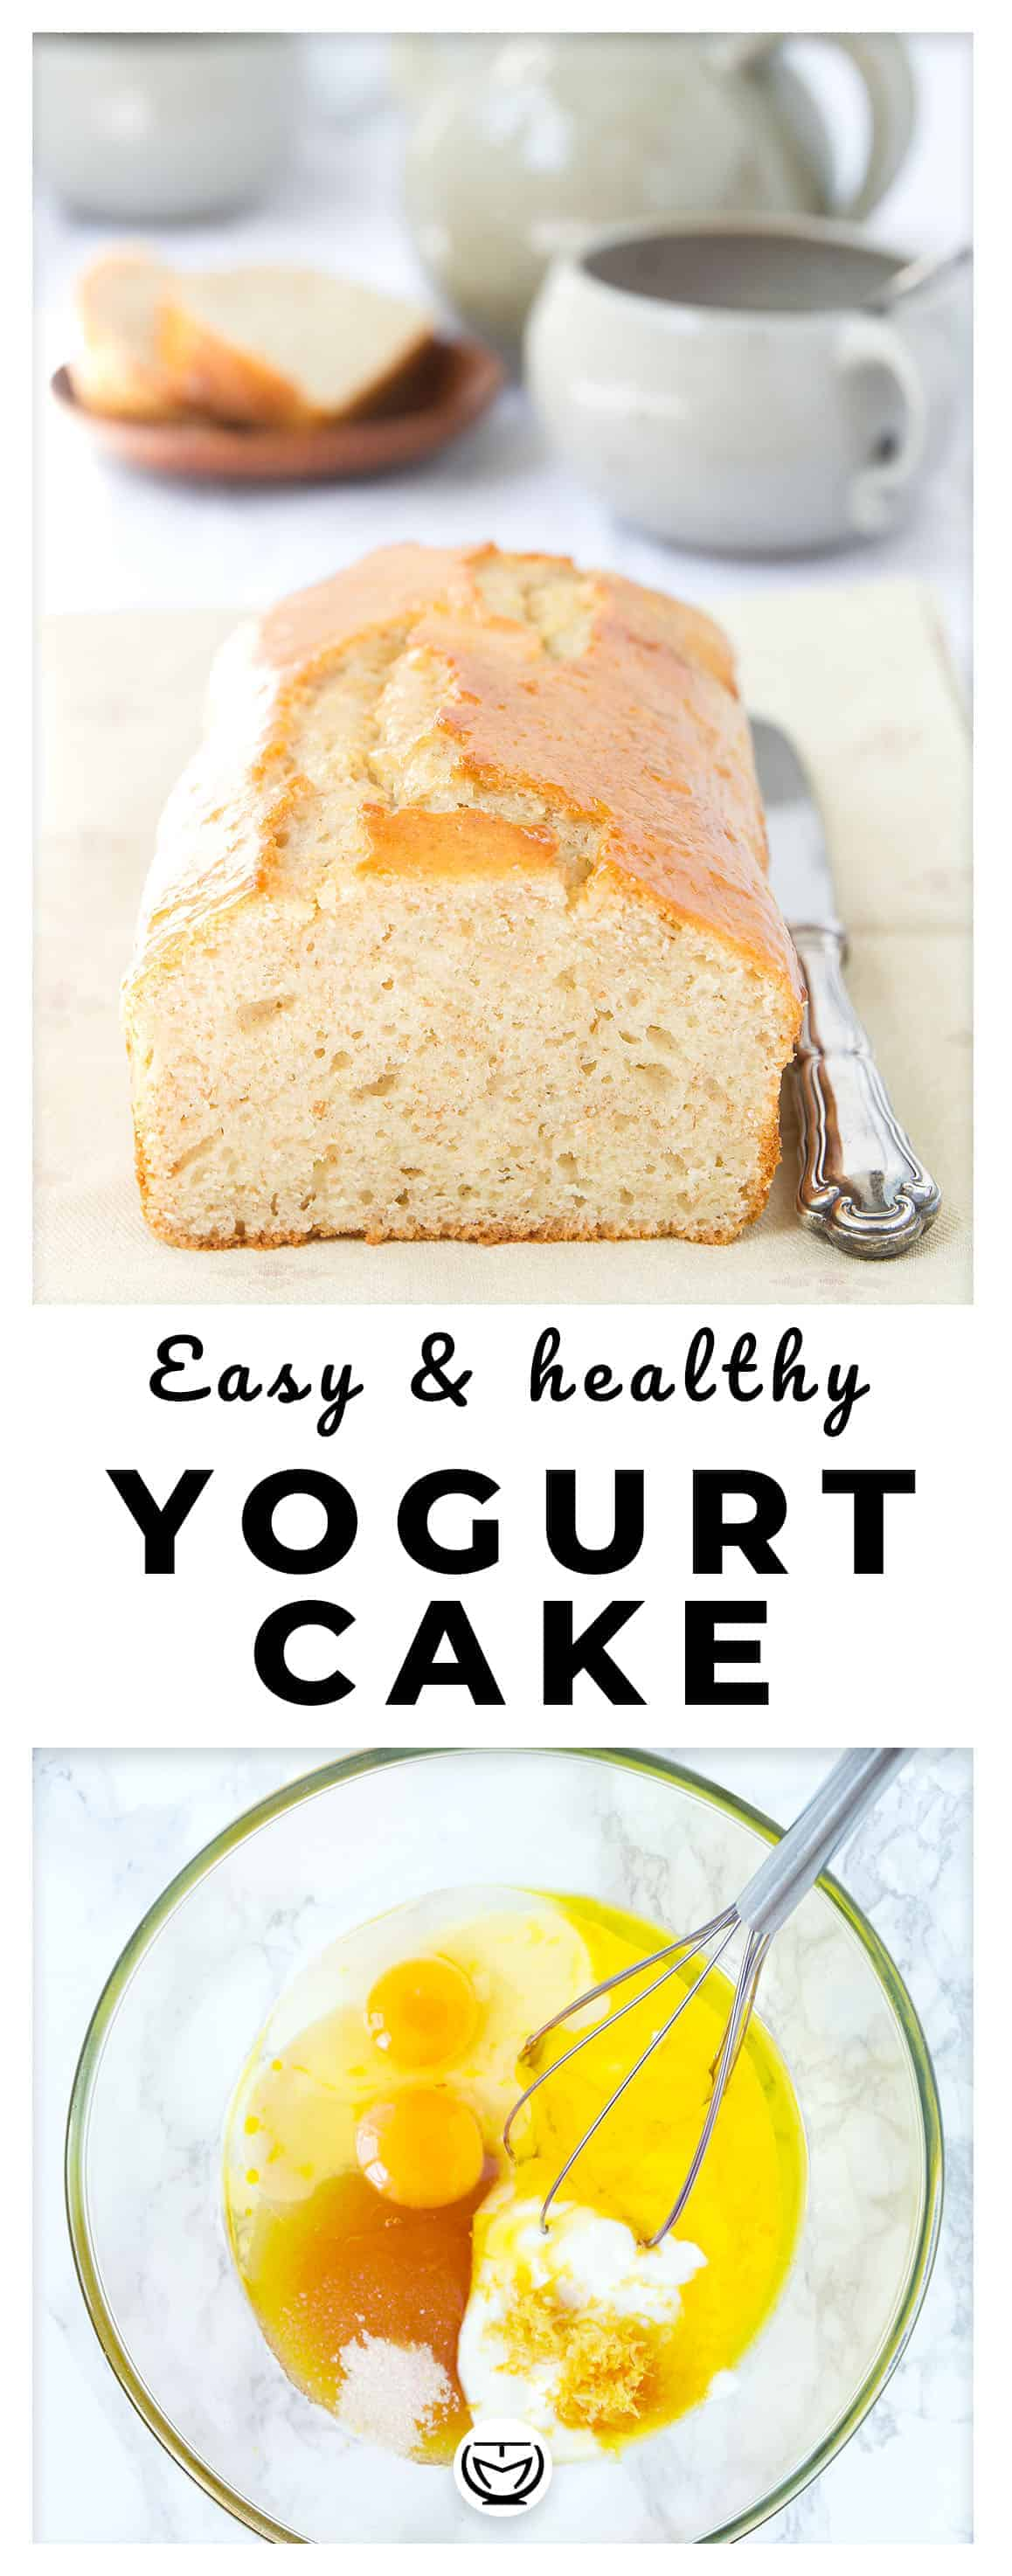 Packed with yogurt, easy and inexpensive, this cake is a must. No refined sugar, no refined flour. All you have to do is mixing a few basic ingredients, all in one bowl, and bake! #easydesserts #cakes #yogurtrecipes #cheapmeals #healthybreakfast #simplecakes